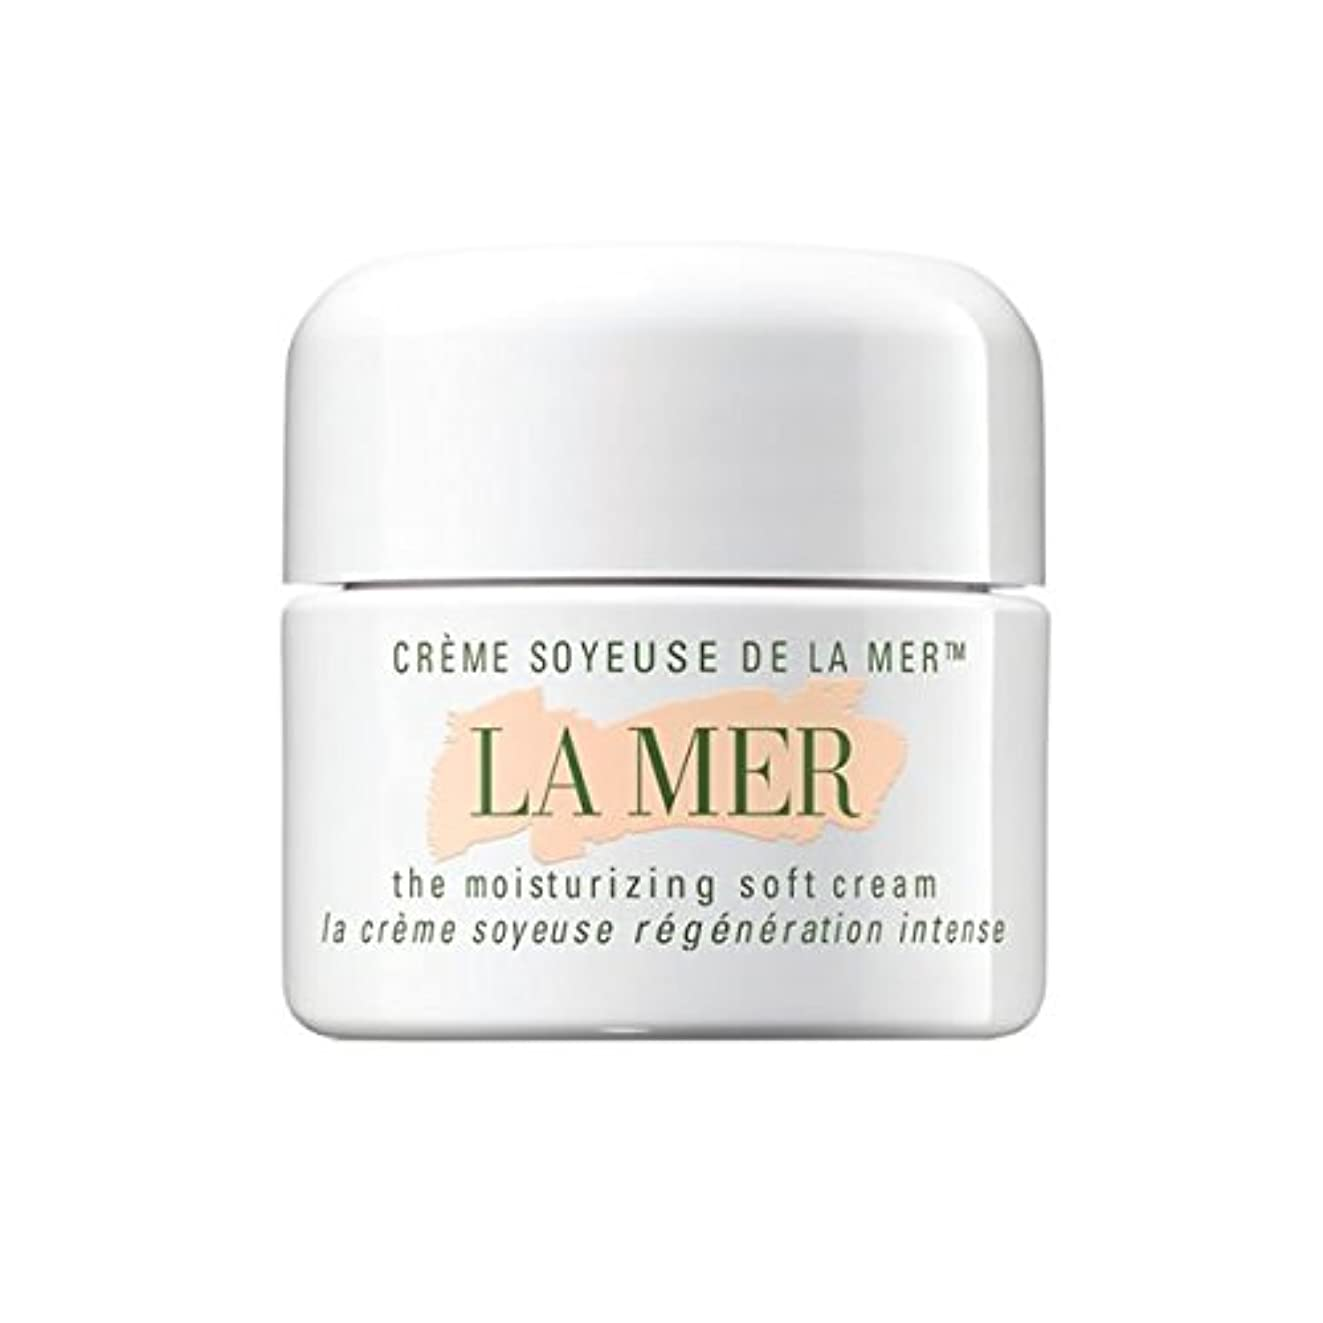 La Mer The Moisturizing Soft Cream 60ml [並行輸入品]